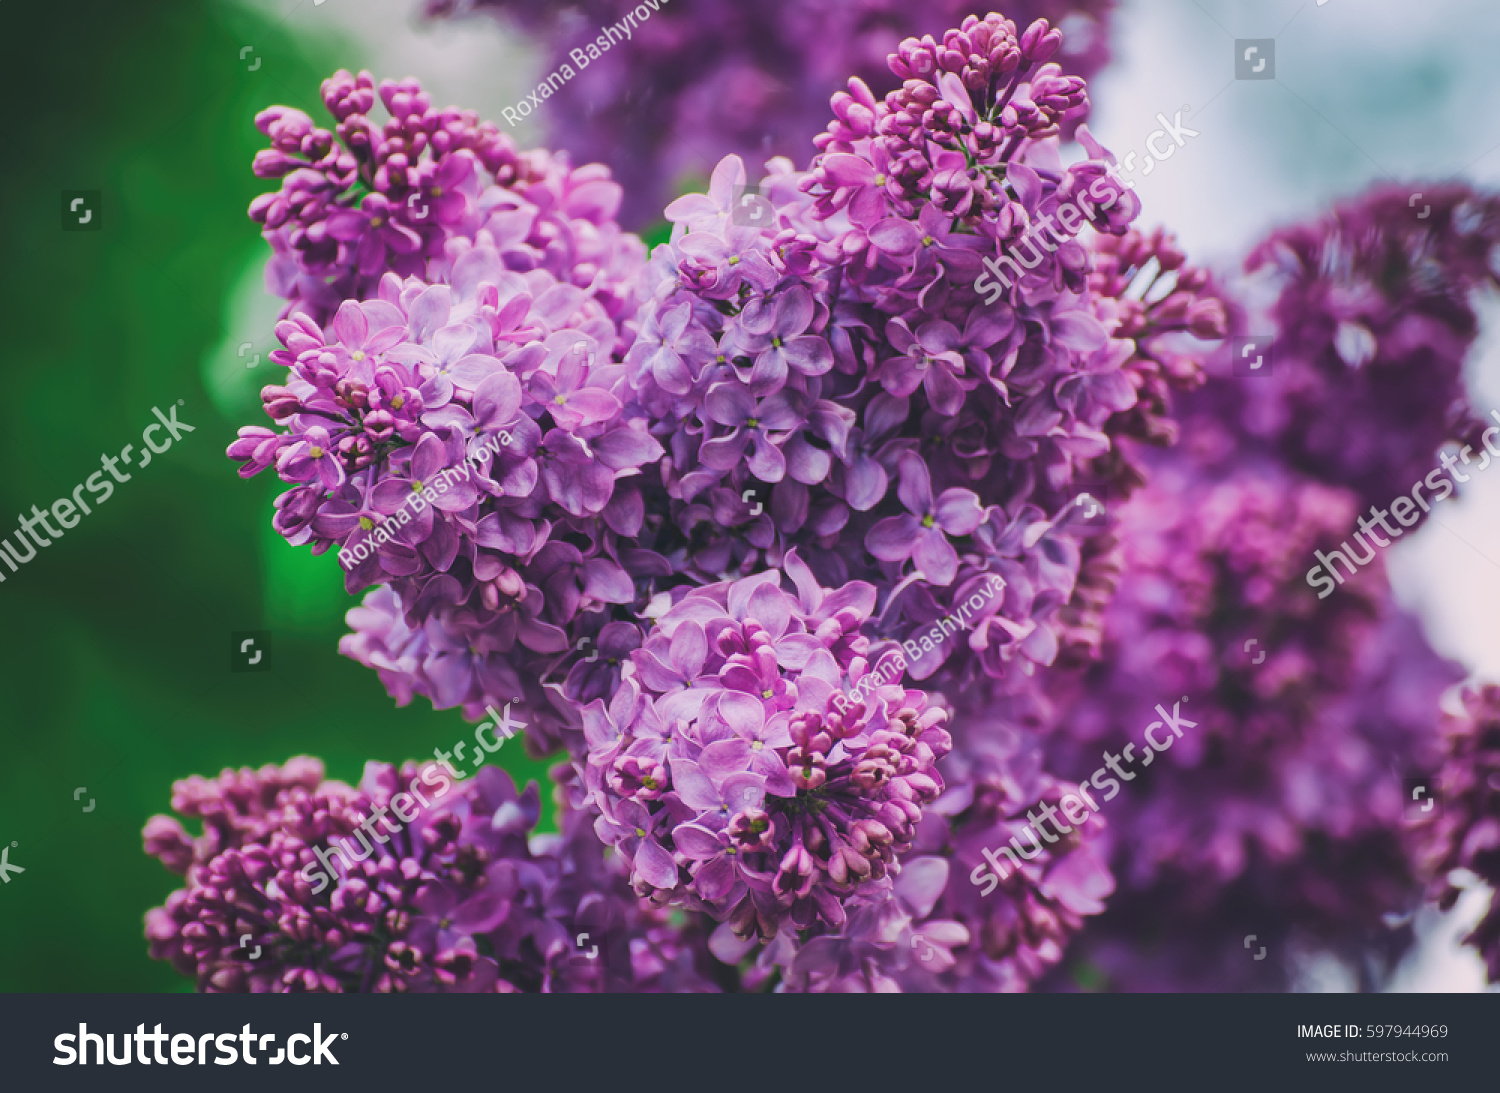 Branch Lilac Flowers Green Leaves Floral Stock Image Download Now